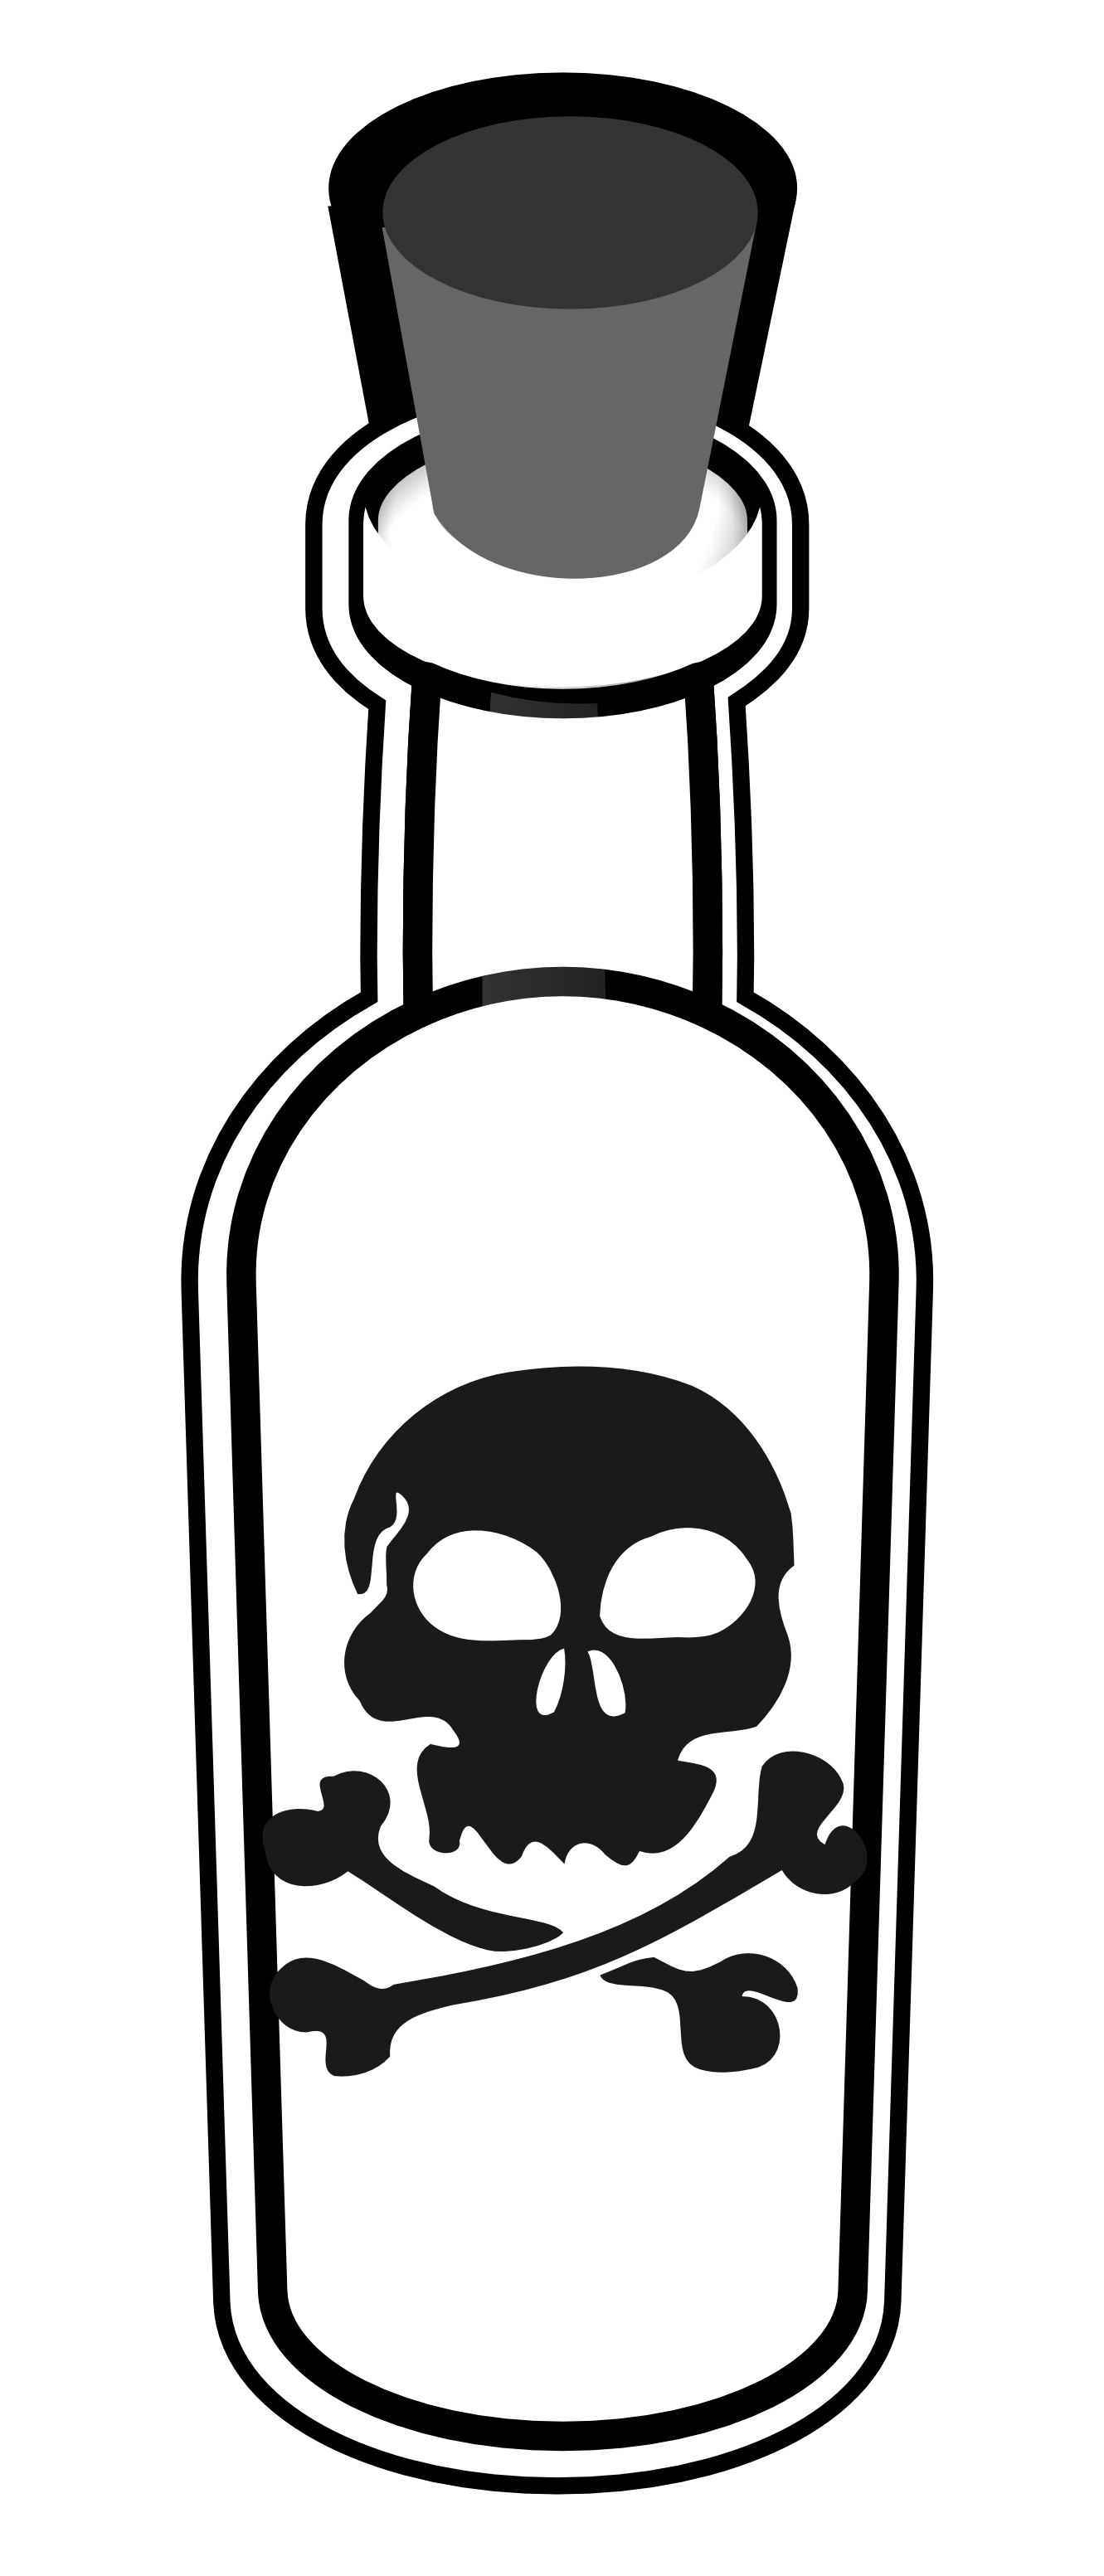 Bottle clipart toxic Zone Cliparts Cliparts Poisonous Poisonous